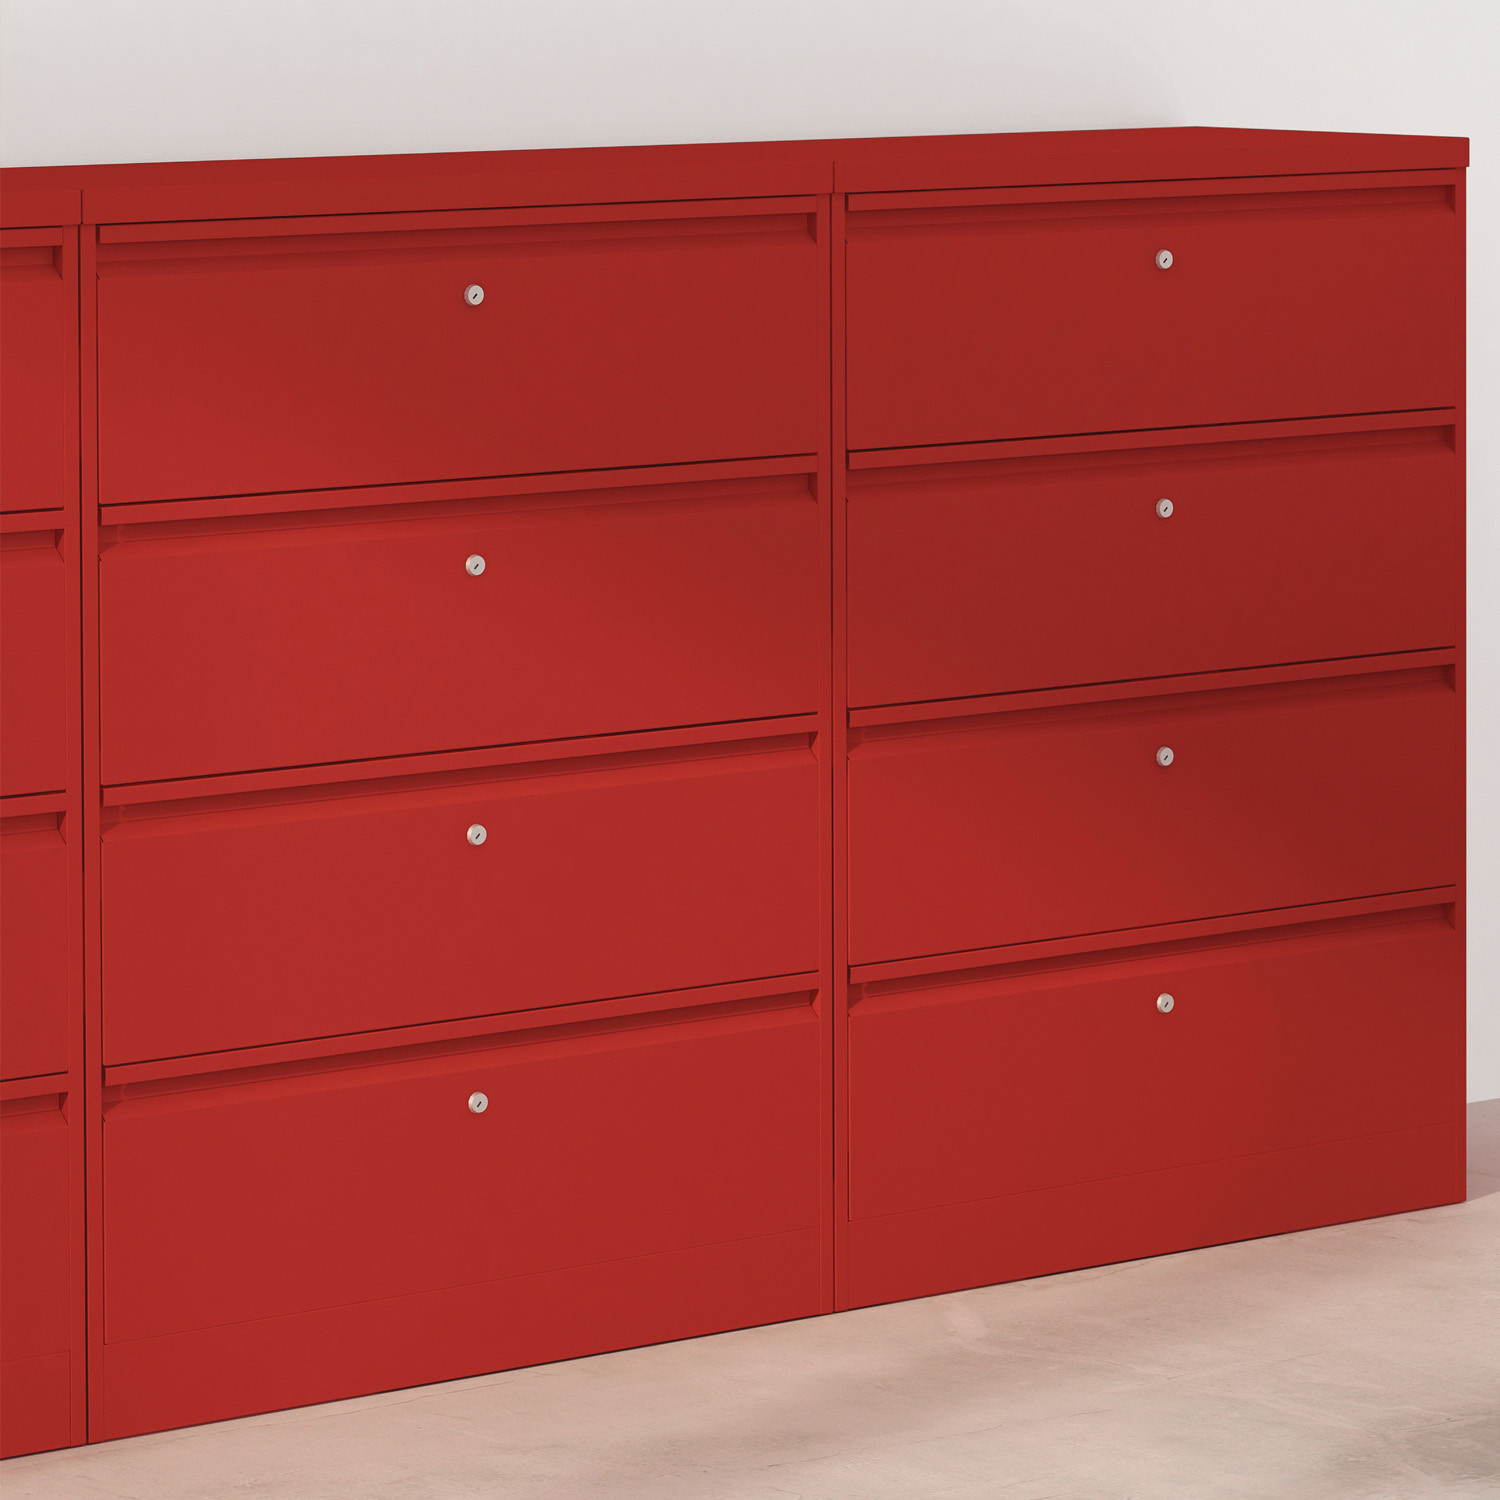 M:Line Filing Cabinet Red